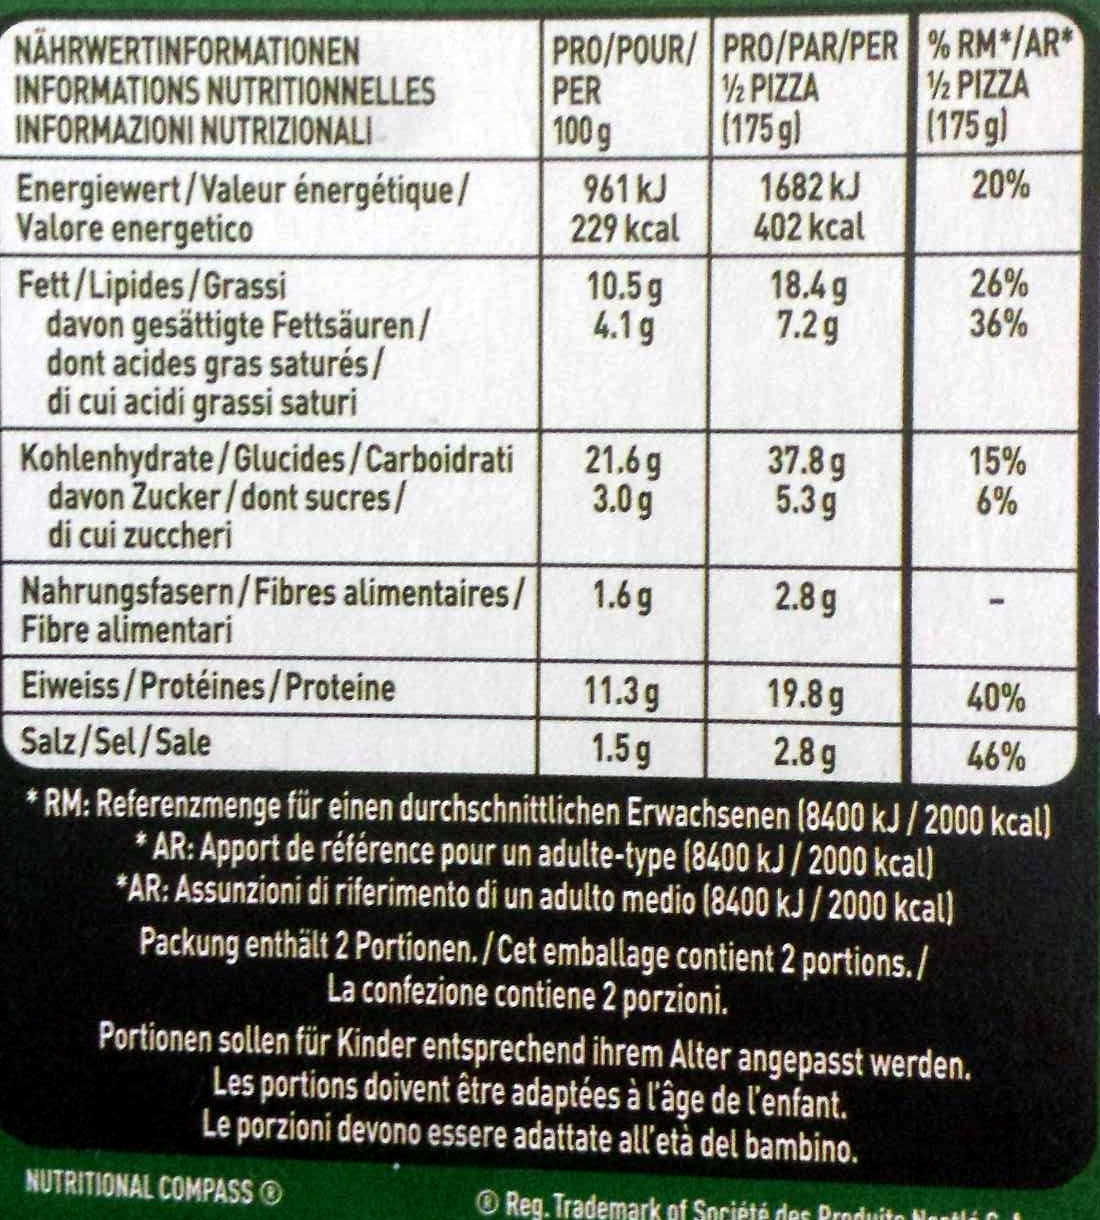 Pizza lafina - Informations nutritionnelles